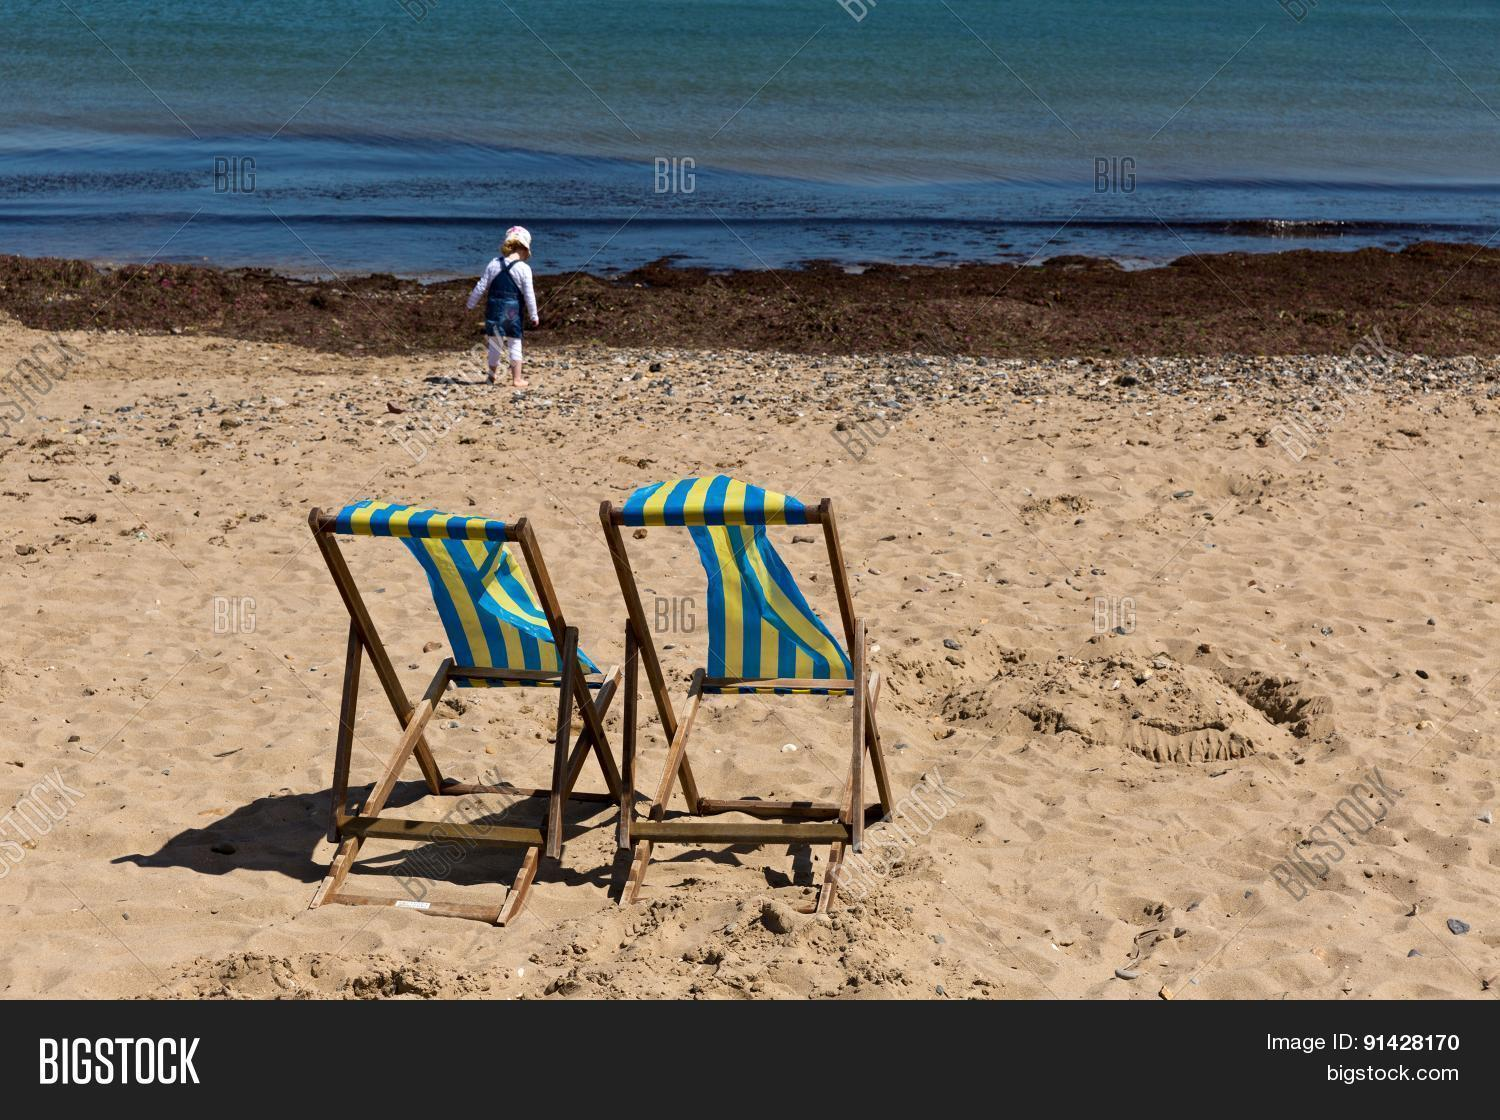 Awe Inspiring Two Blue White Striped Image Photo Free Trial Bigstock Caraccident5 Cool Chair Designs And Ideas Caraccident5Info